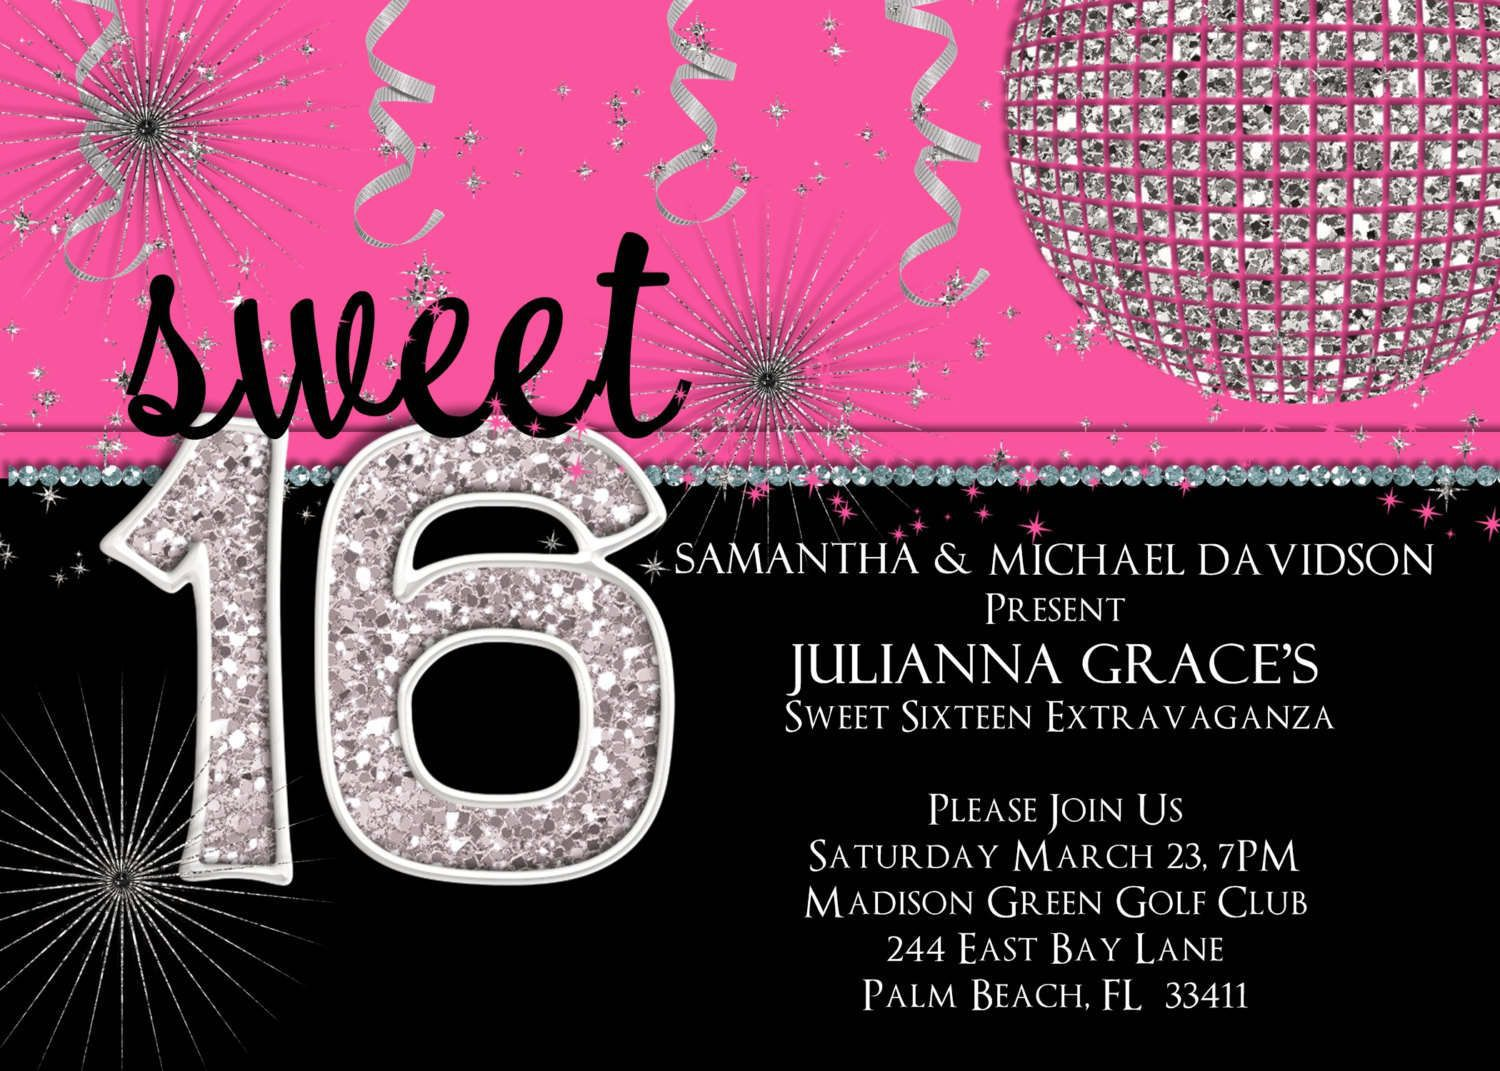 000 Magnificent Sweet 16 Invite Template Example  Templates Surprise Party Invitation Birthday Free 16thFull